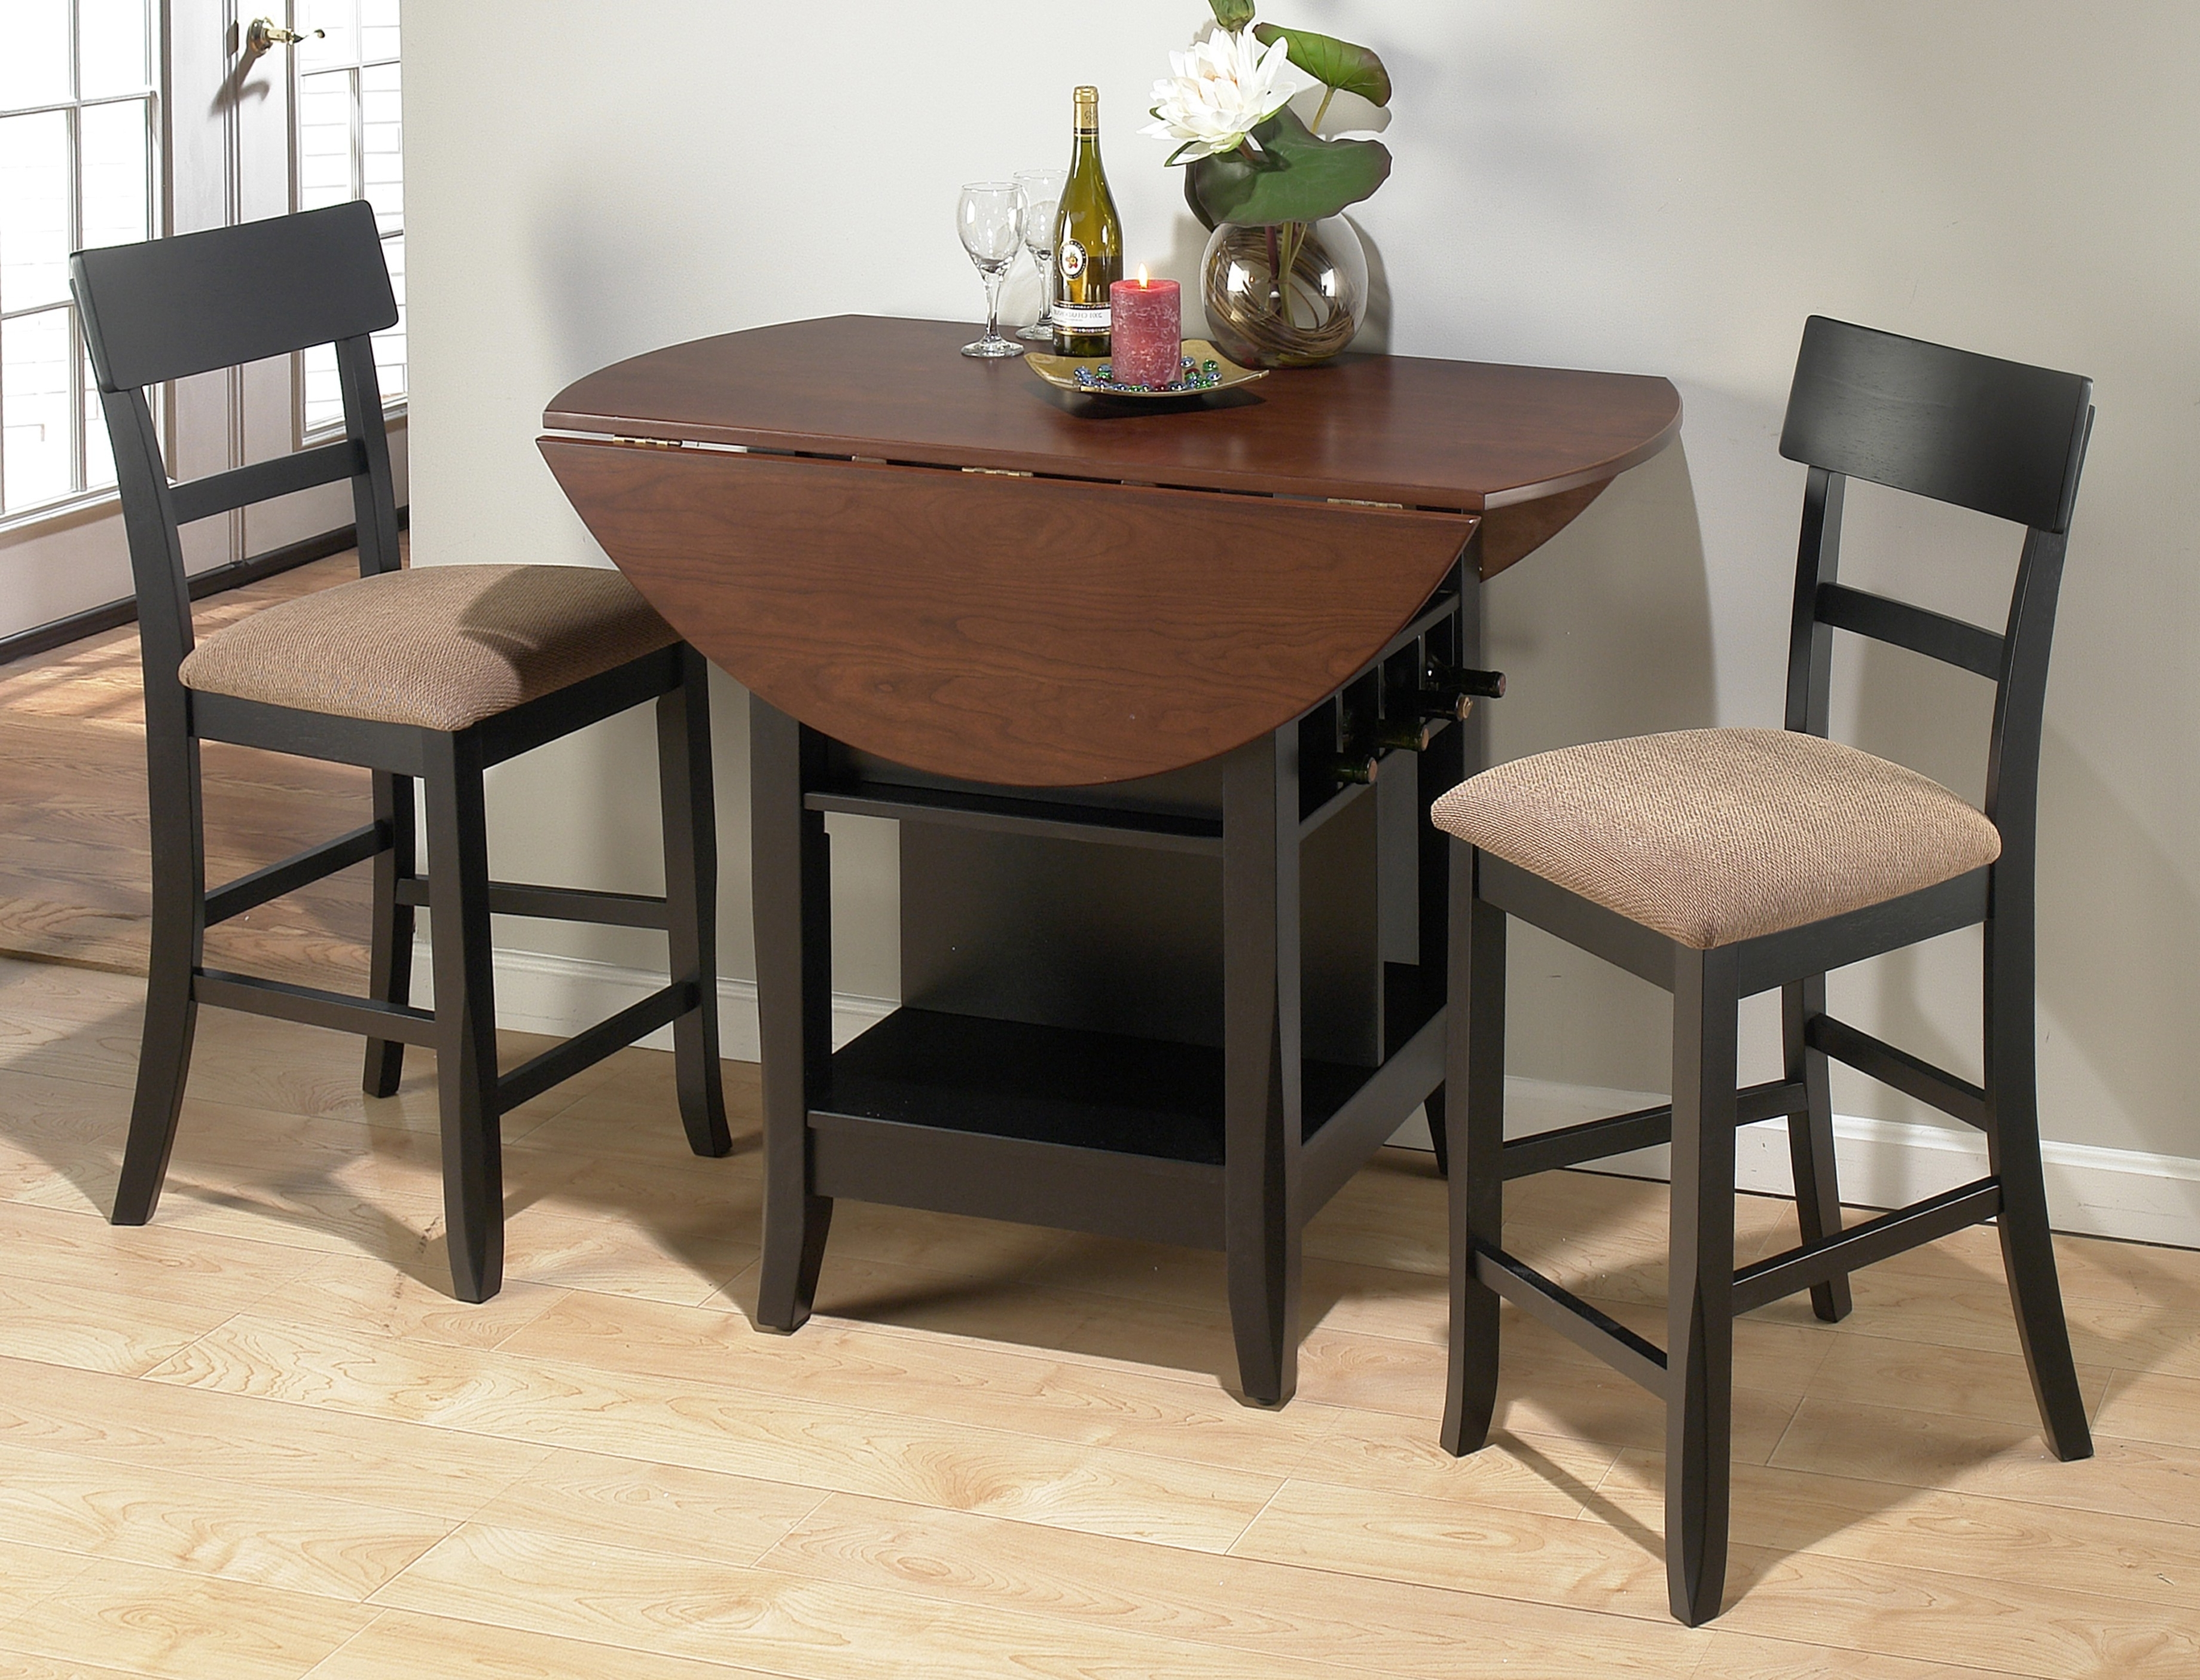 Dining Room Dining Sets For Small Rooms Compact Dining Table Chairs With Most Current Compact Dining Tables (View 18 of 25)